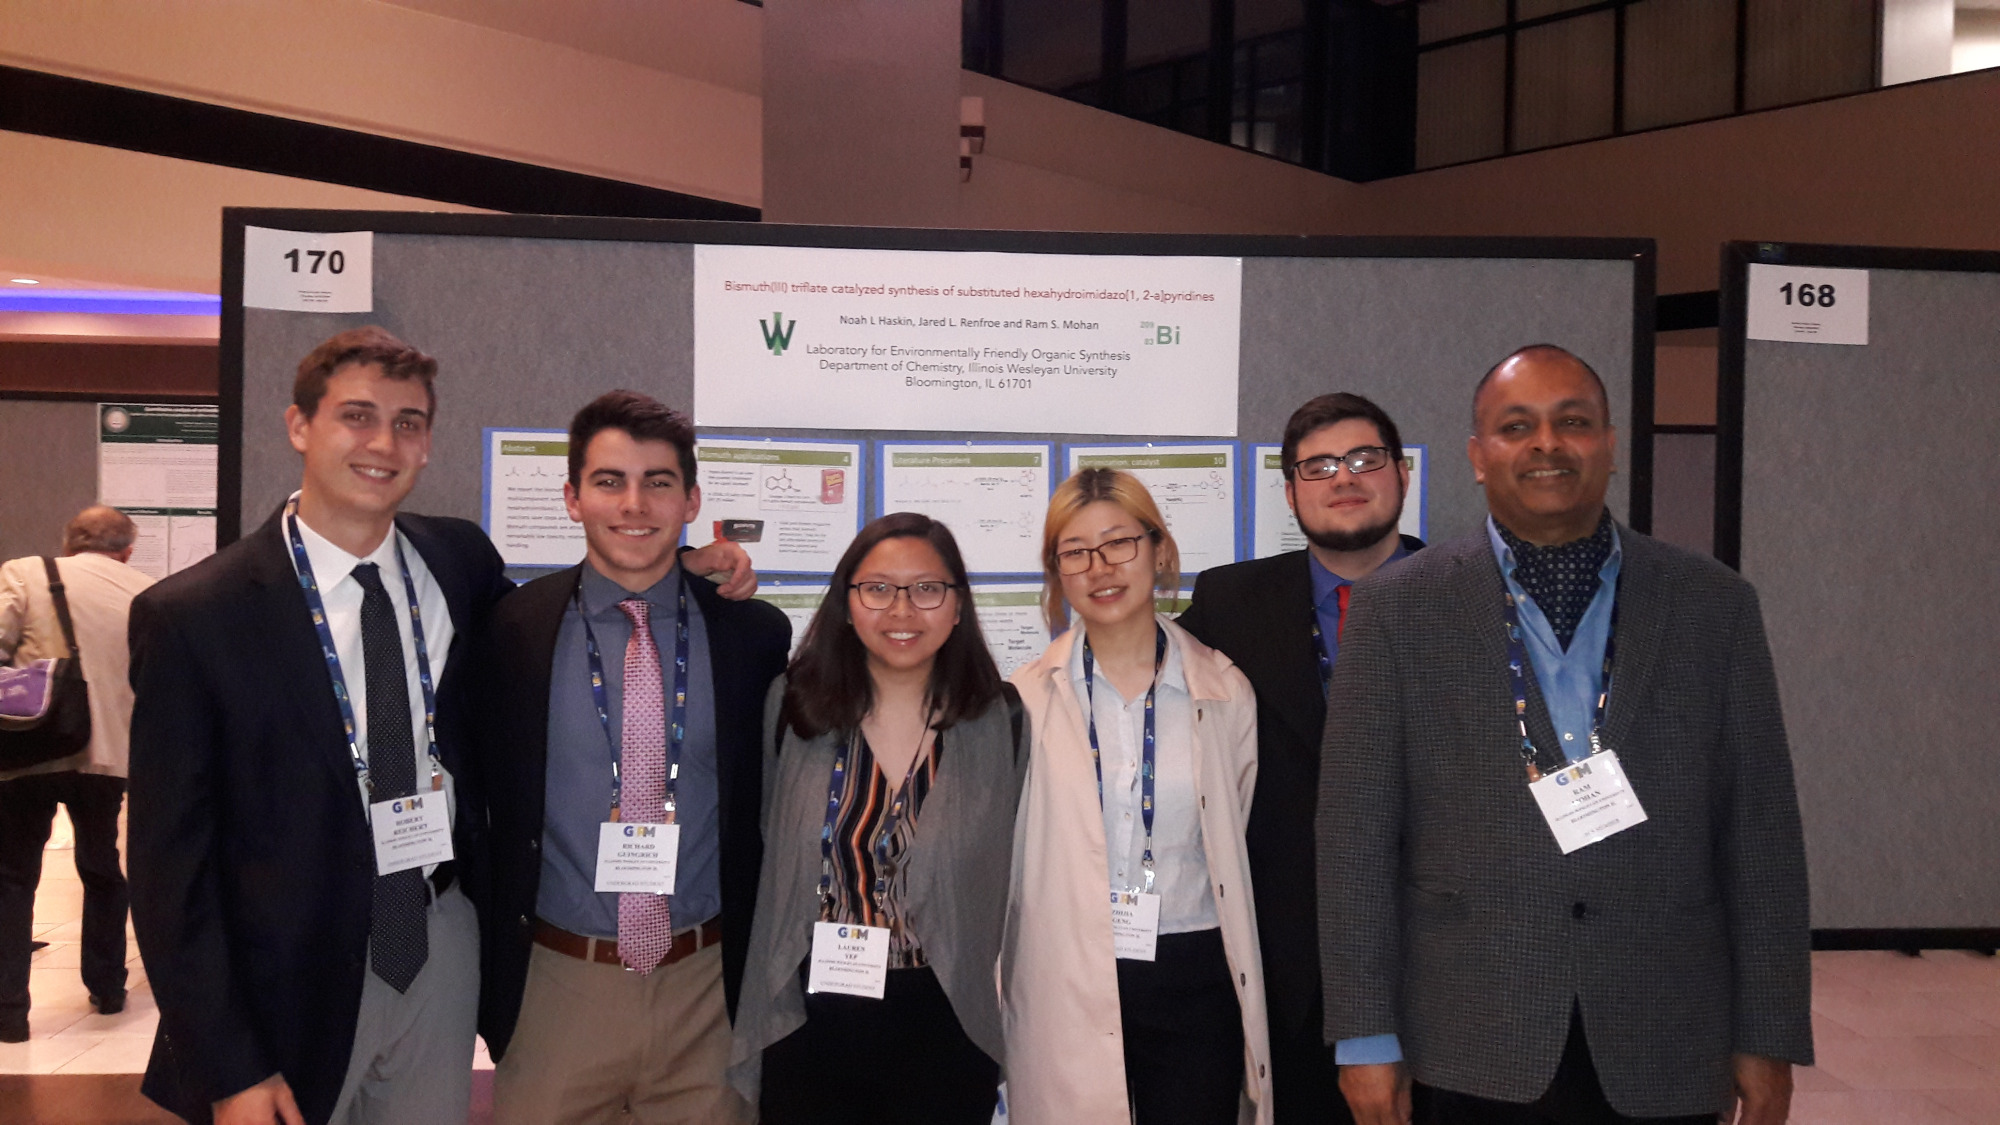 Research Group with Dr. Mohan in front of poster presentation.